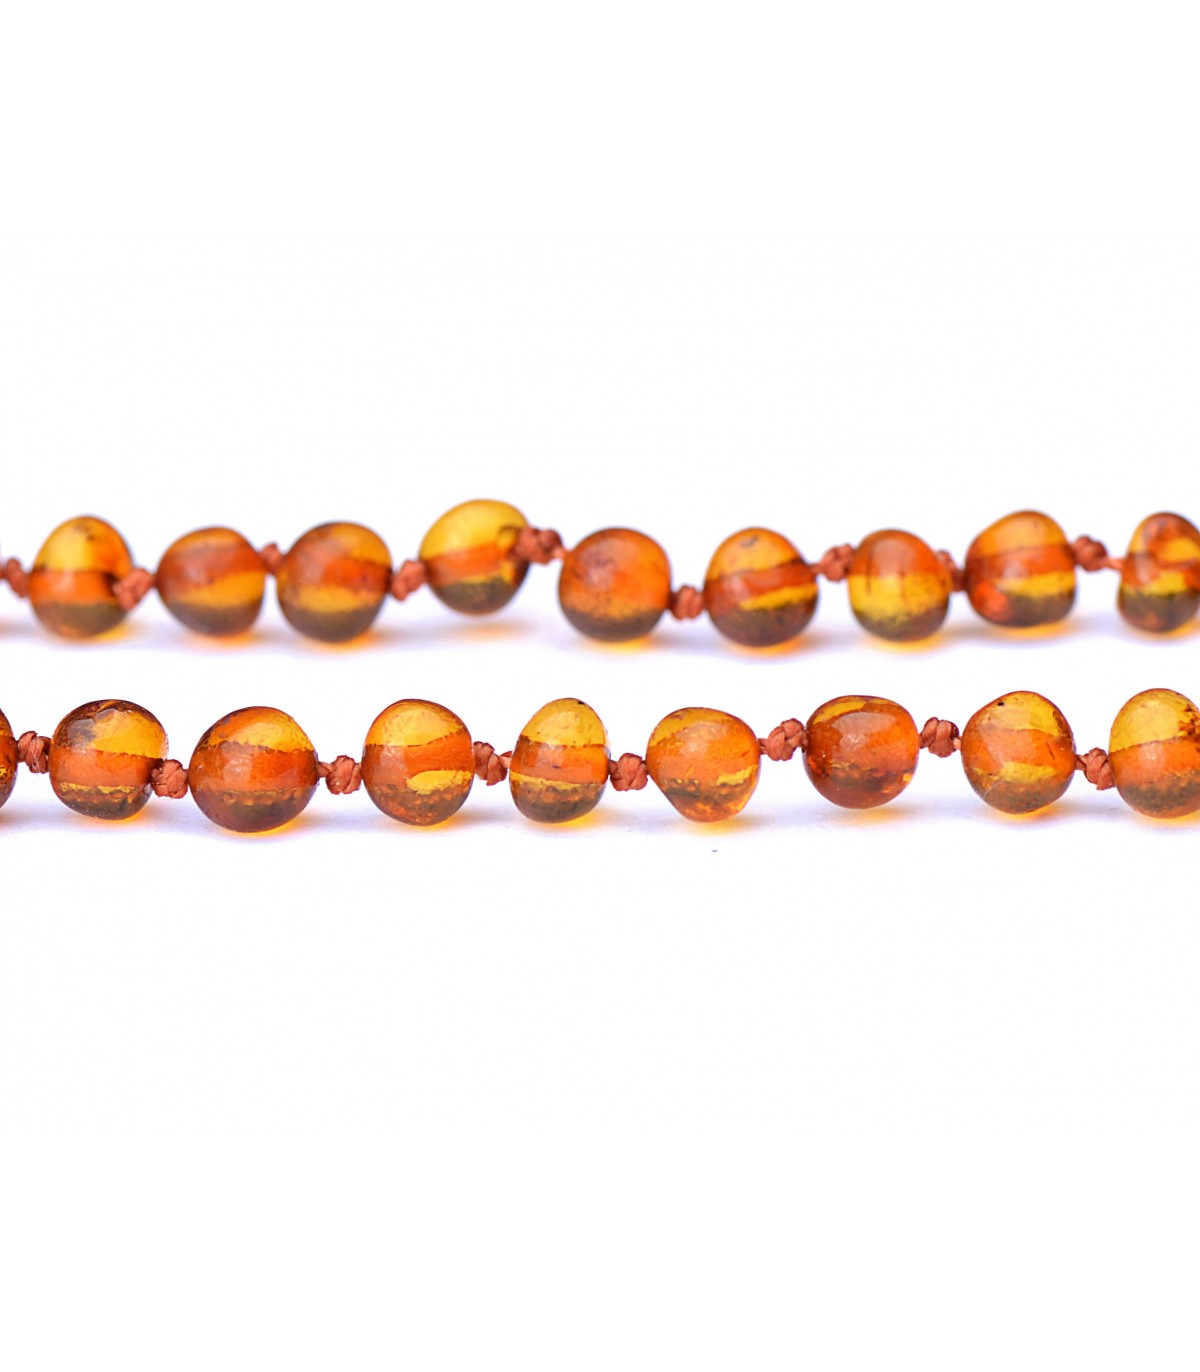 Handmade Baltic Amber Teething Necklace For Babies